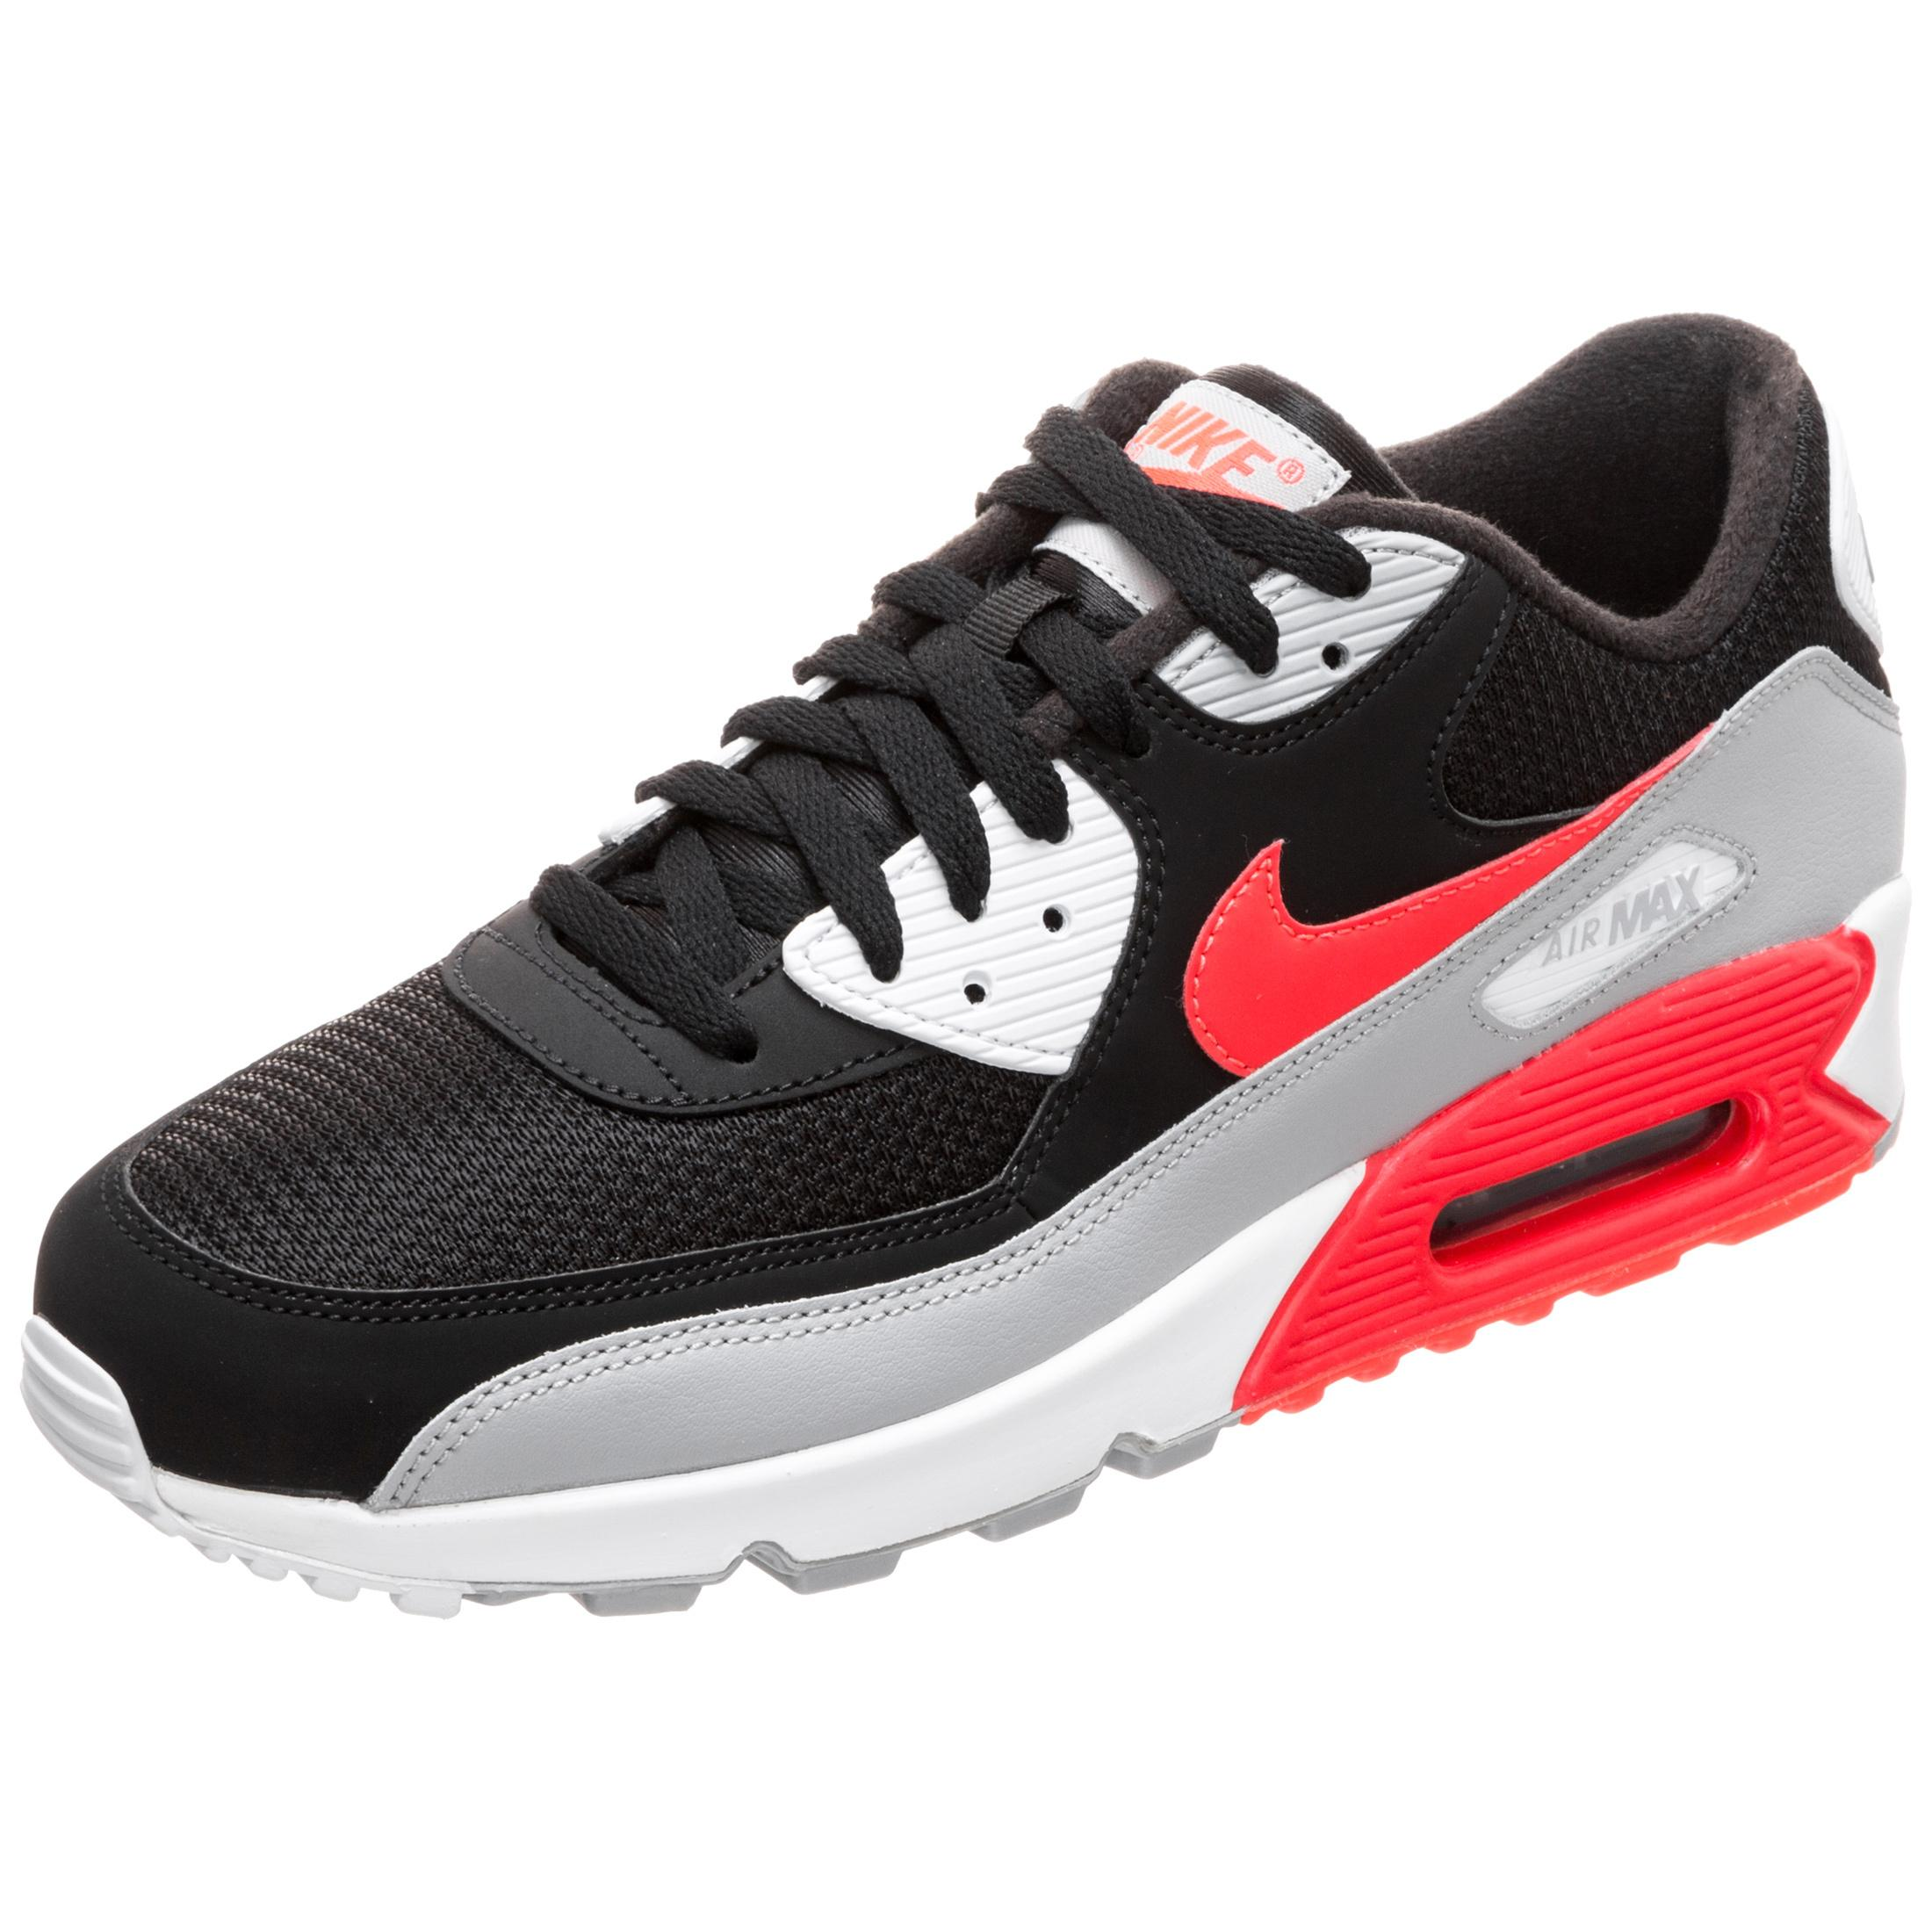 Air Max 90 Essential Schwarz Herren aktion